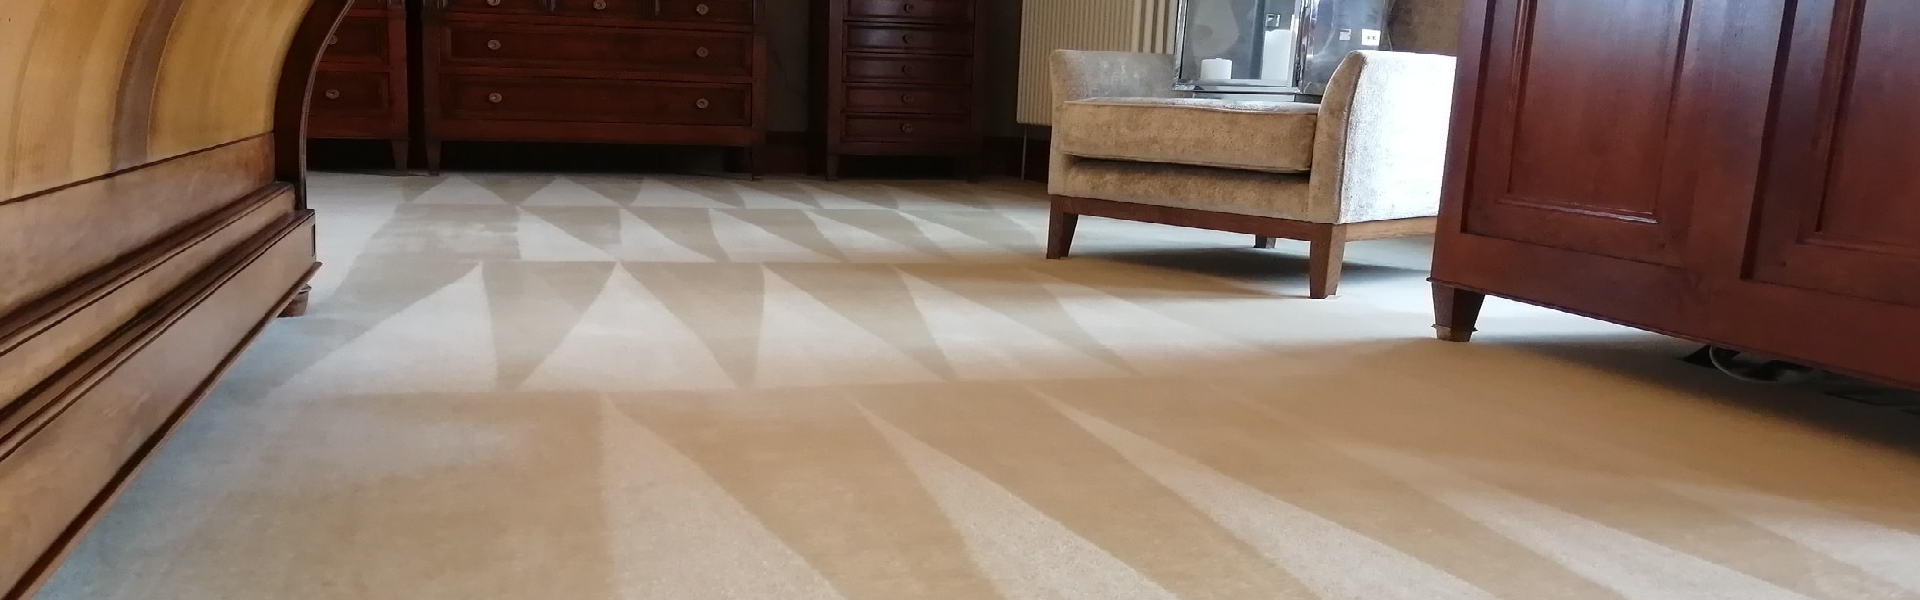 Why You Should Clean Carpets Regularly